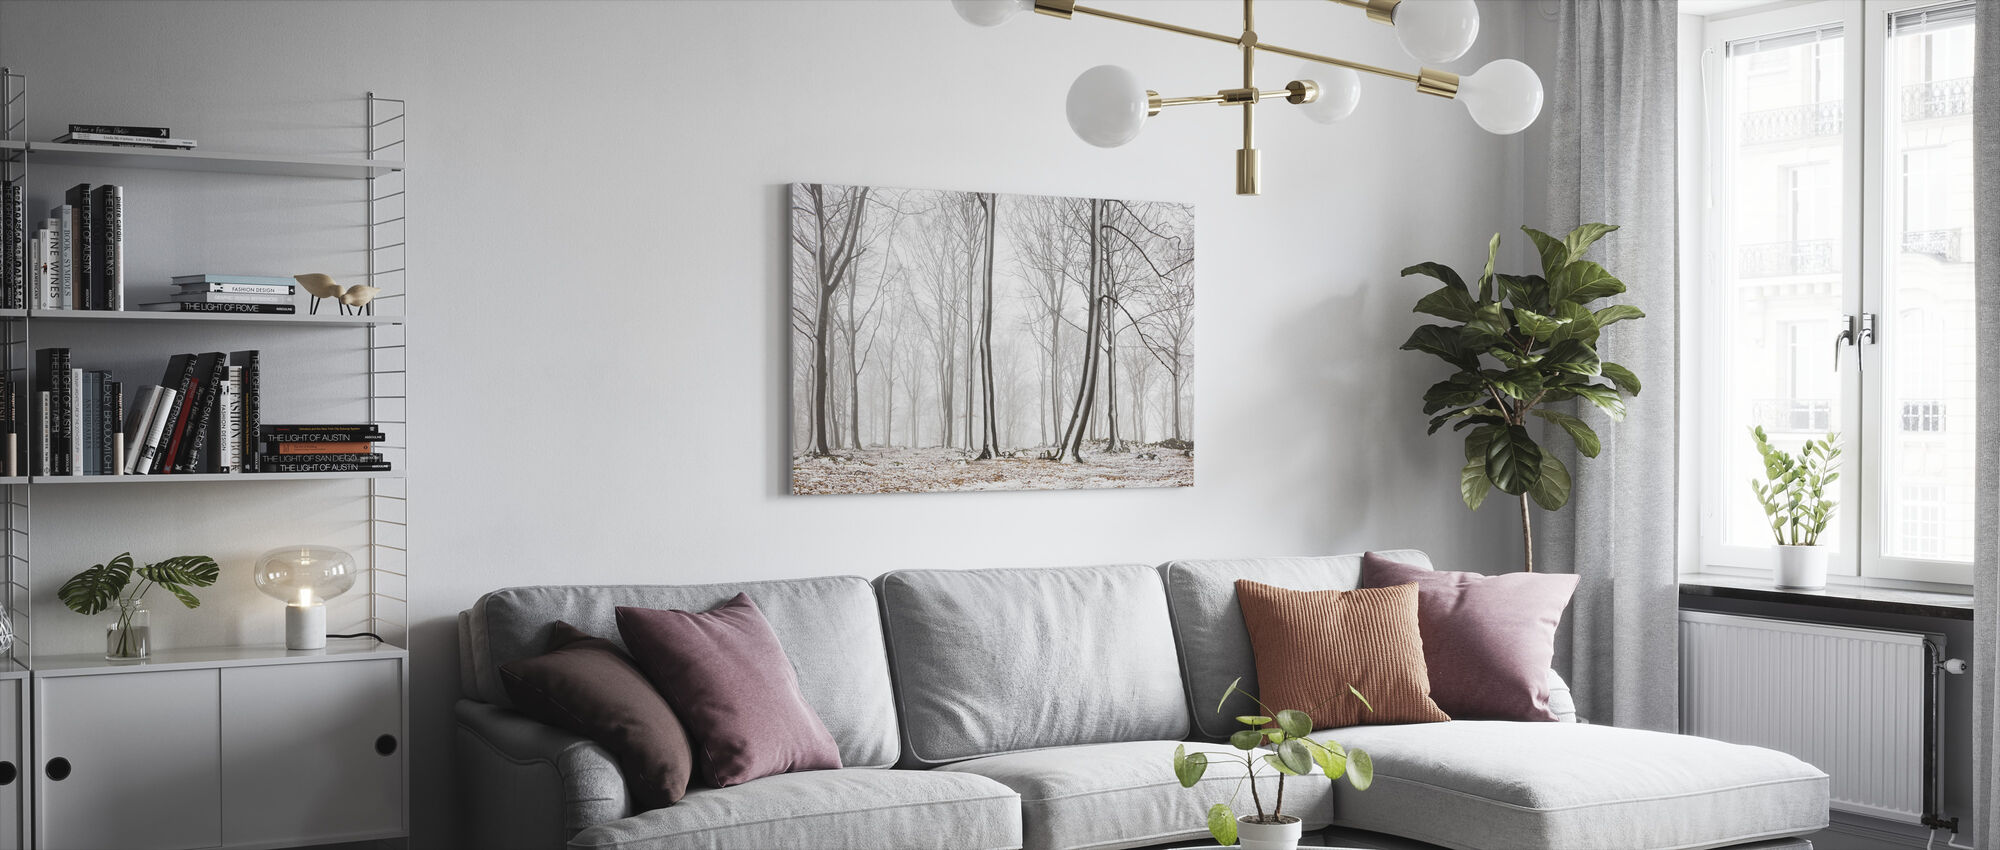 Kale stengels in de winter - Canvas print - Woonkamer